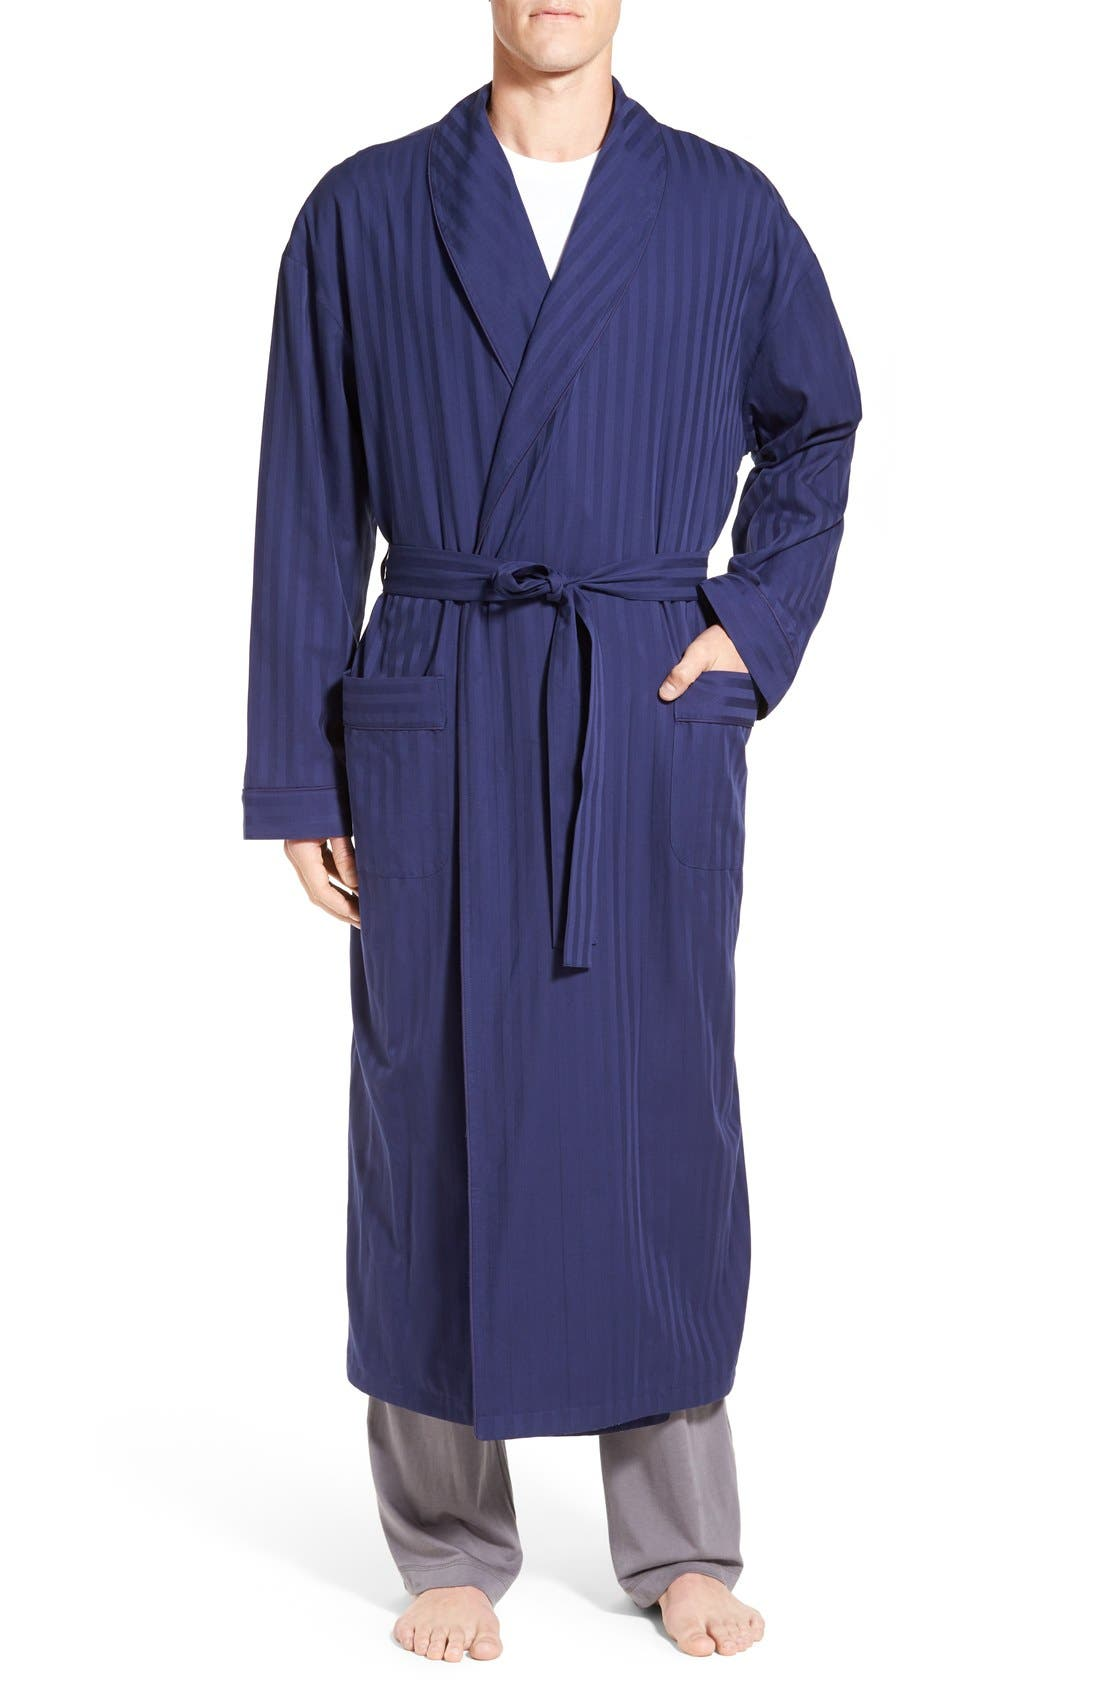 majestic u0027get the bluesu0027 terry lined robe - Terry Cloth Robe